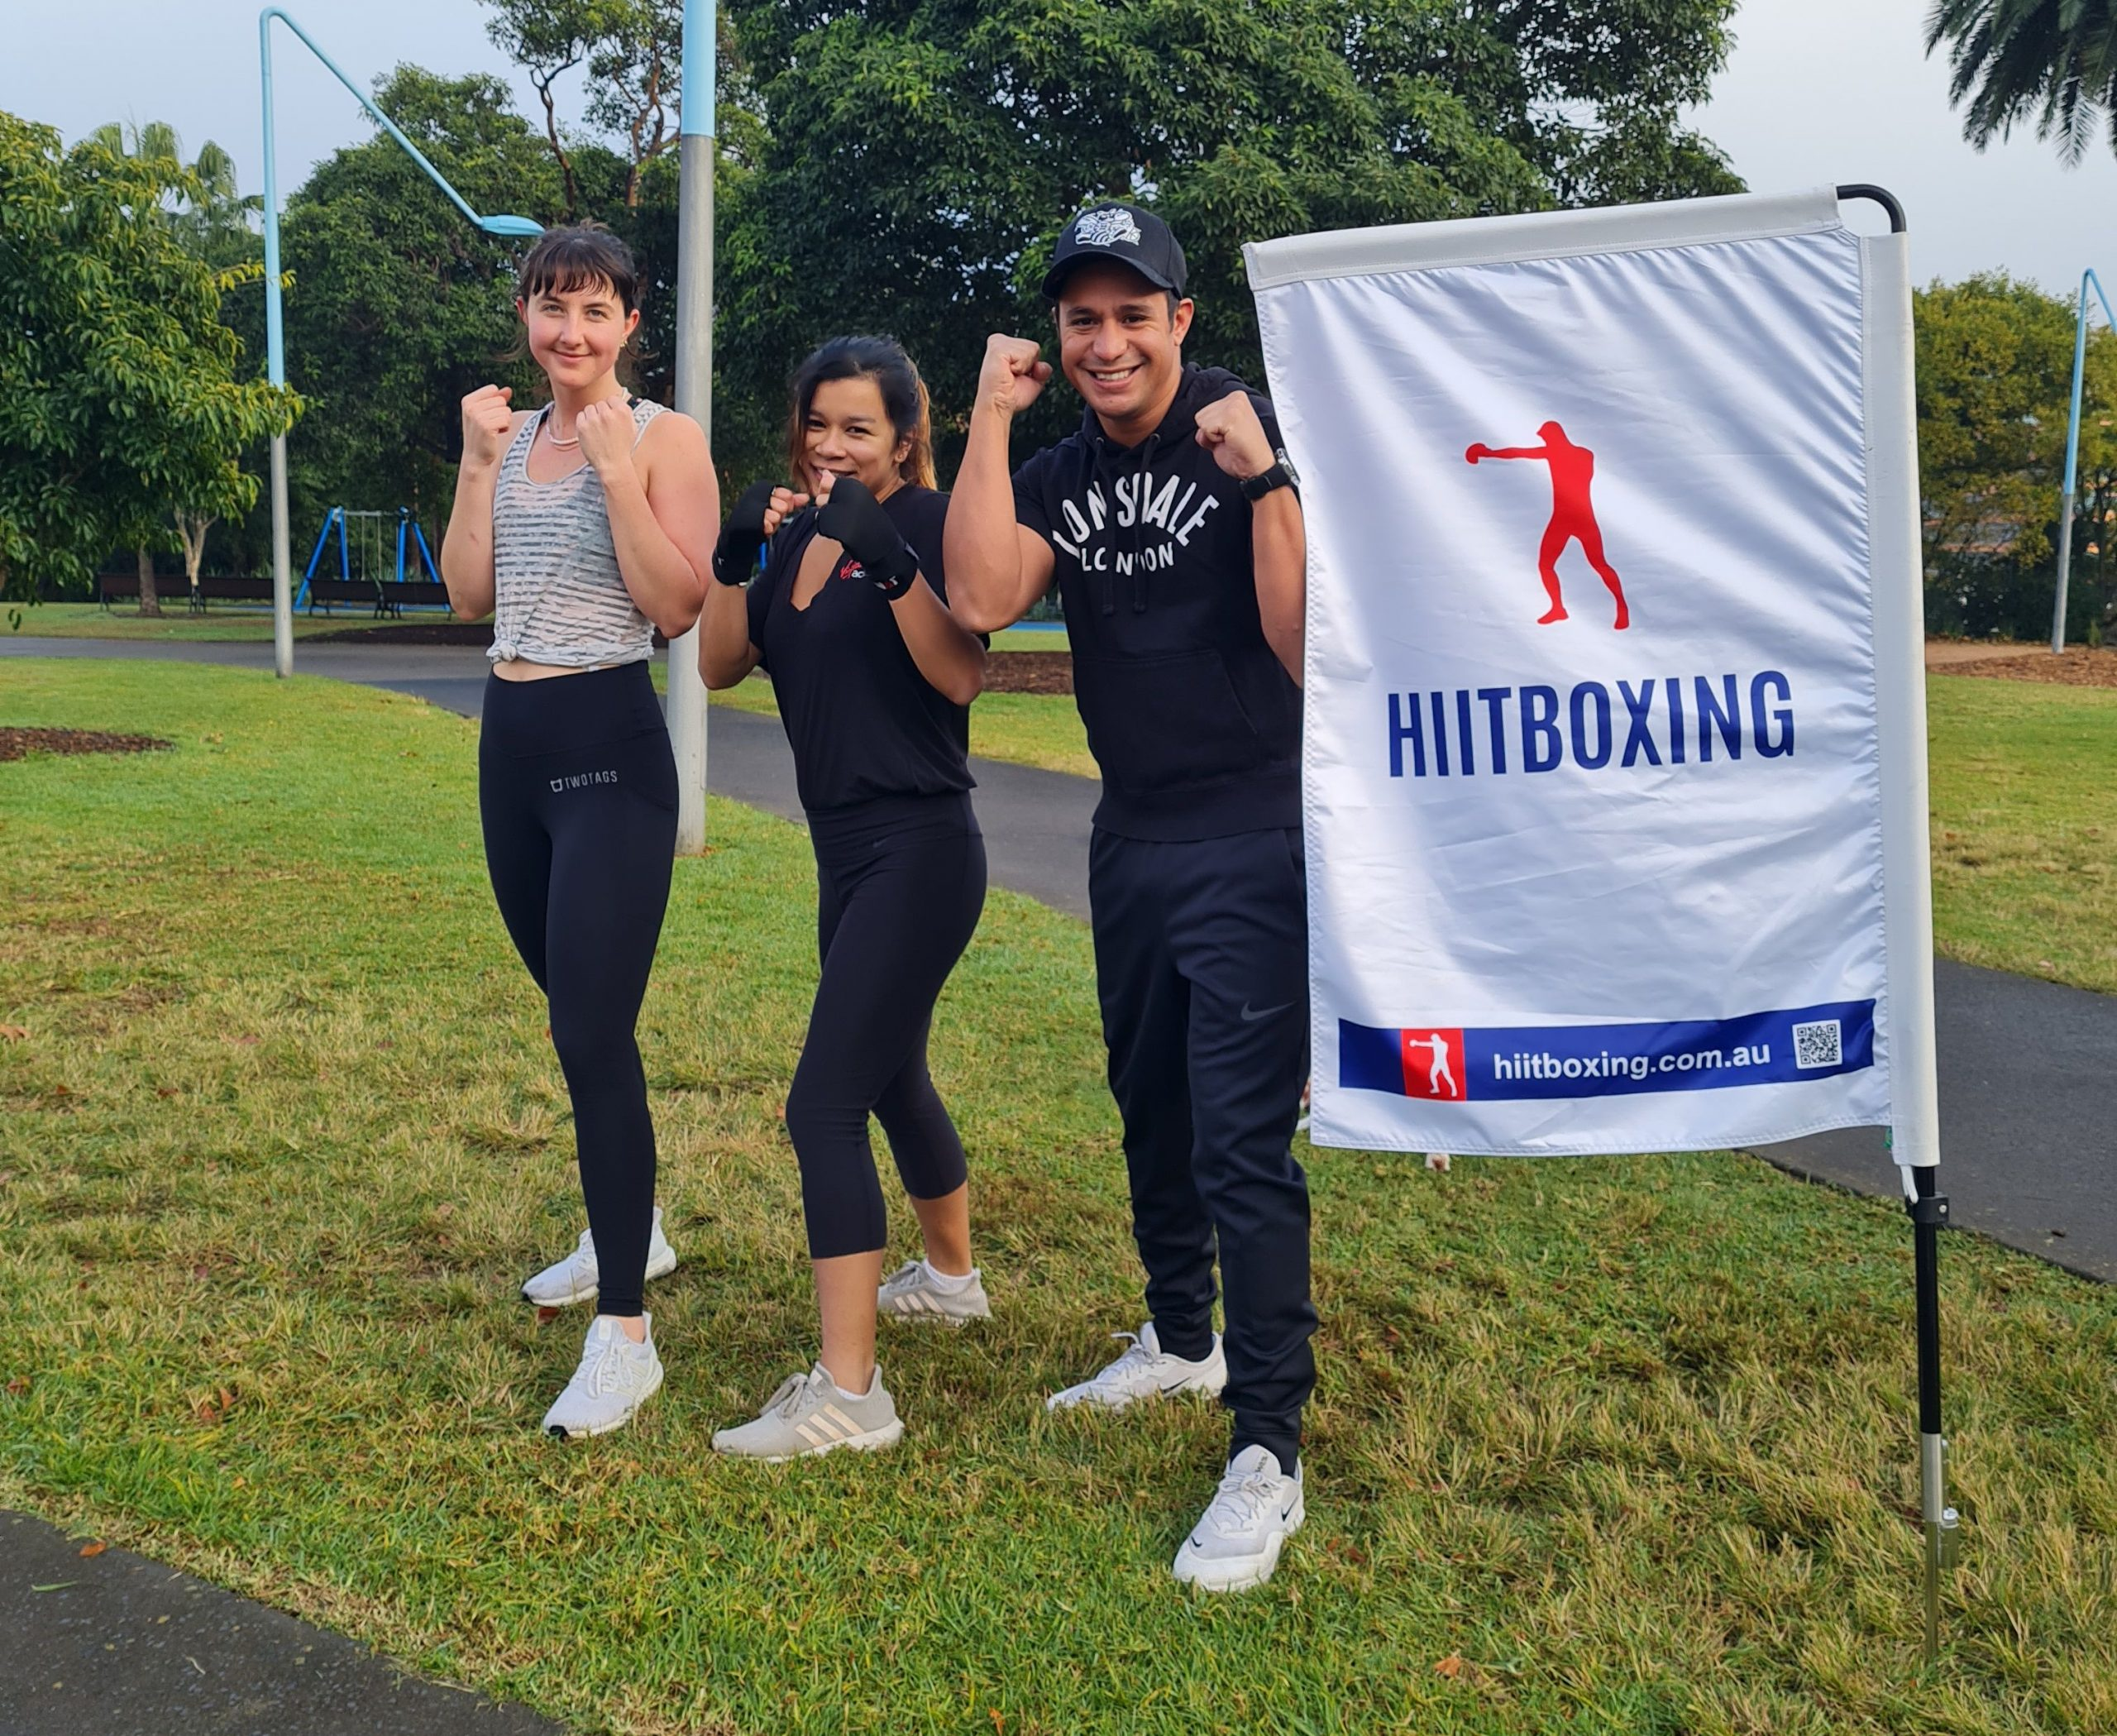 outdoor boxing hiitboxing posing